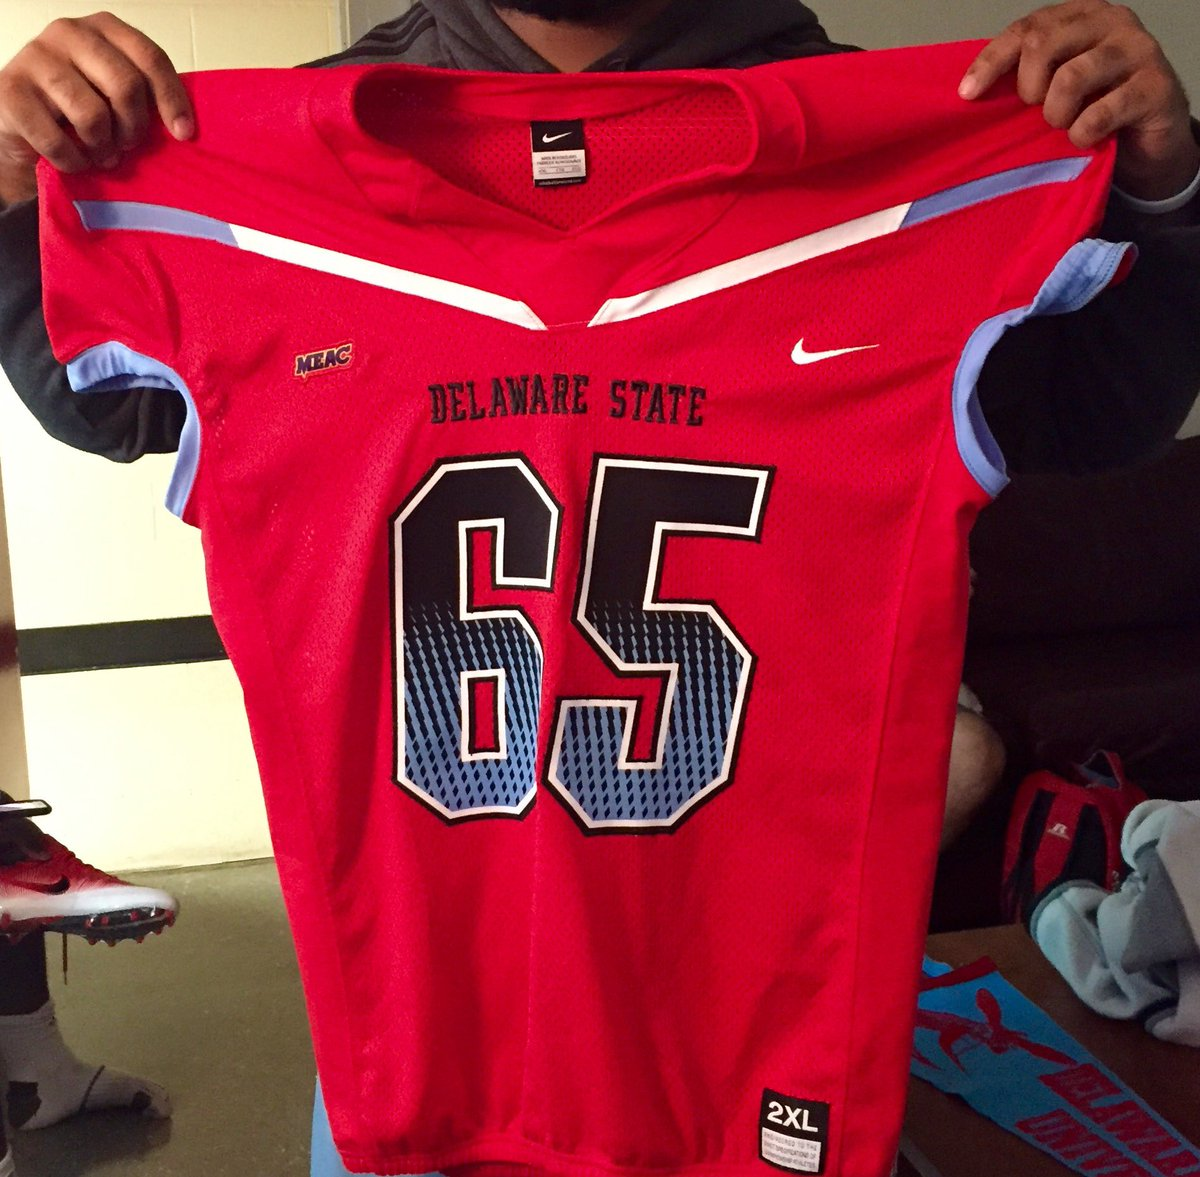 competitive price 0269b 27130 Delaware State FB on Twitter: